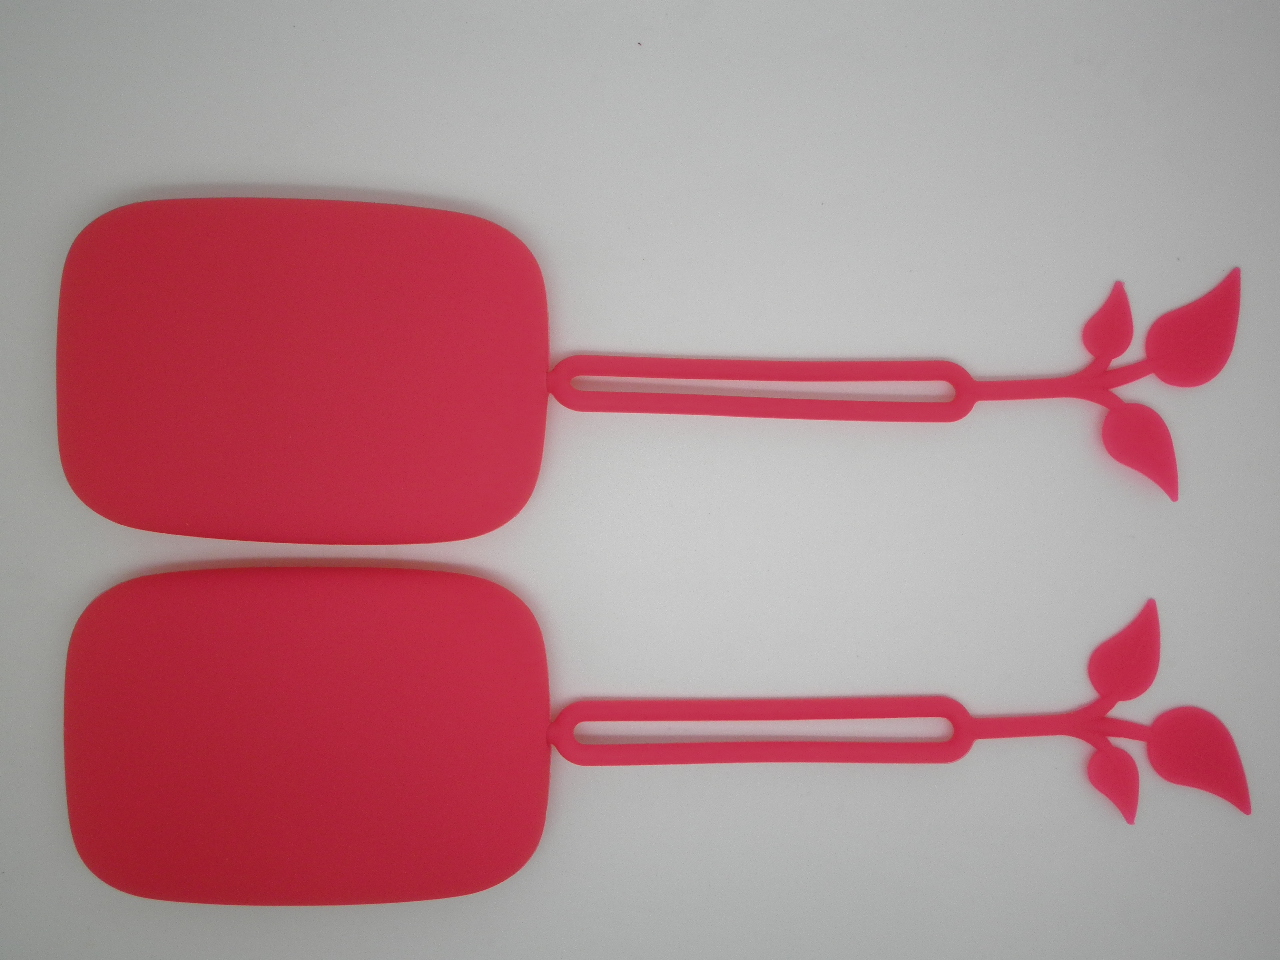 http://www.refinehksilicone.cn/data/images/product/20180417111012_376.JPG